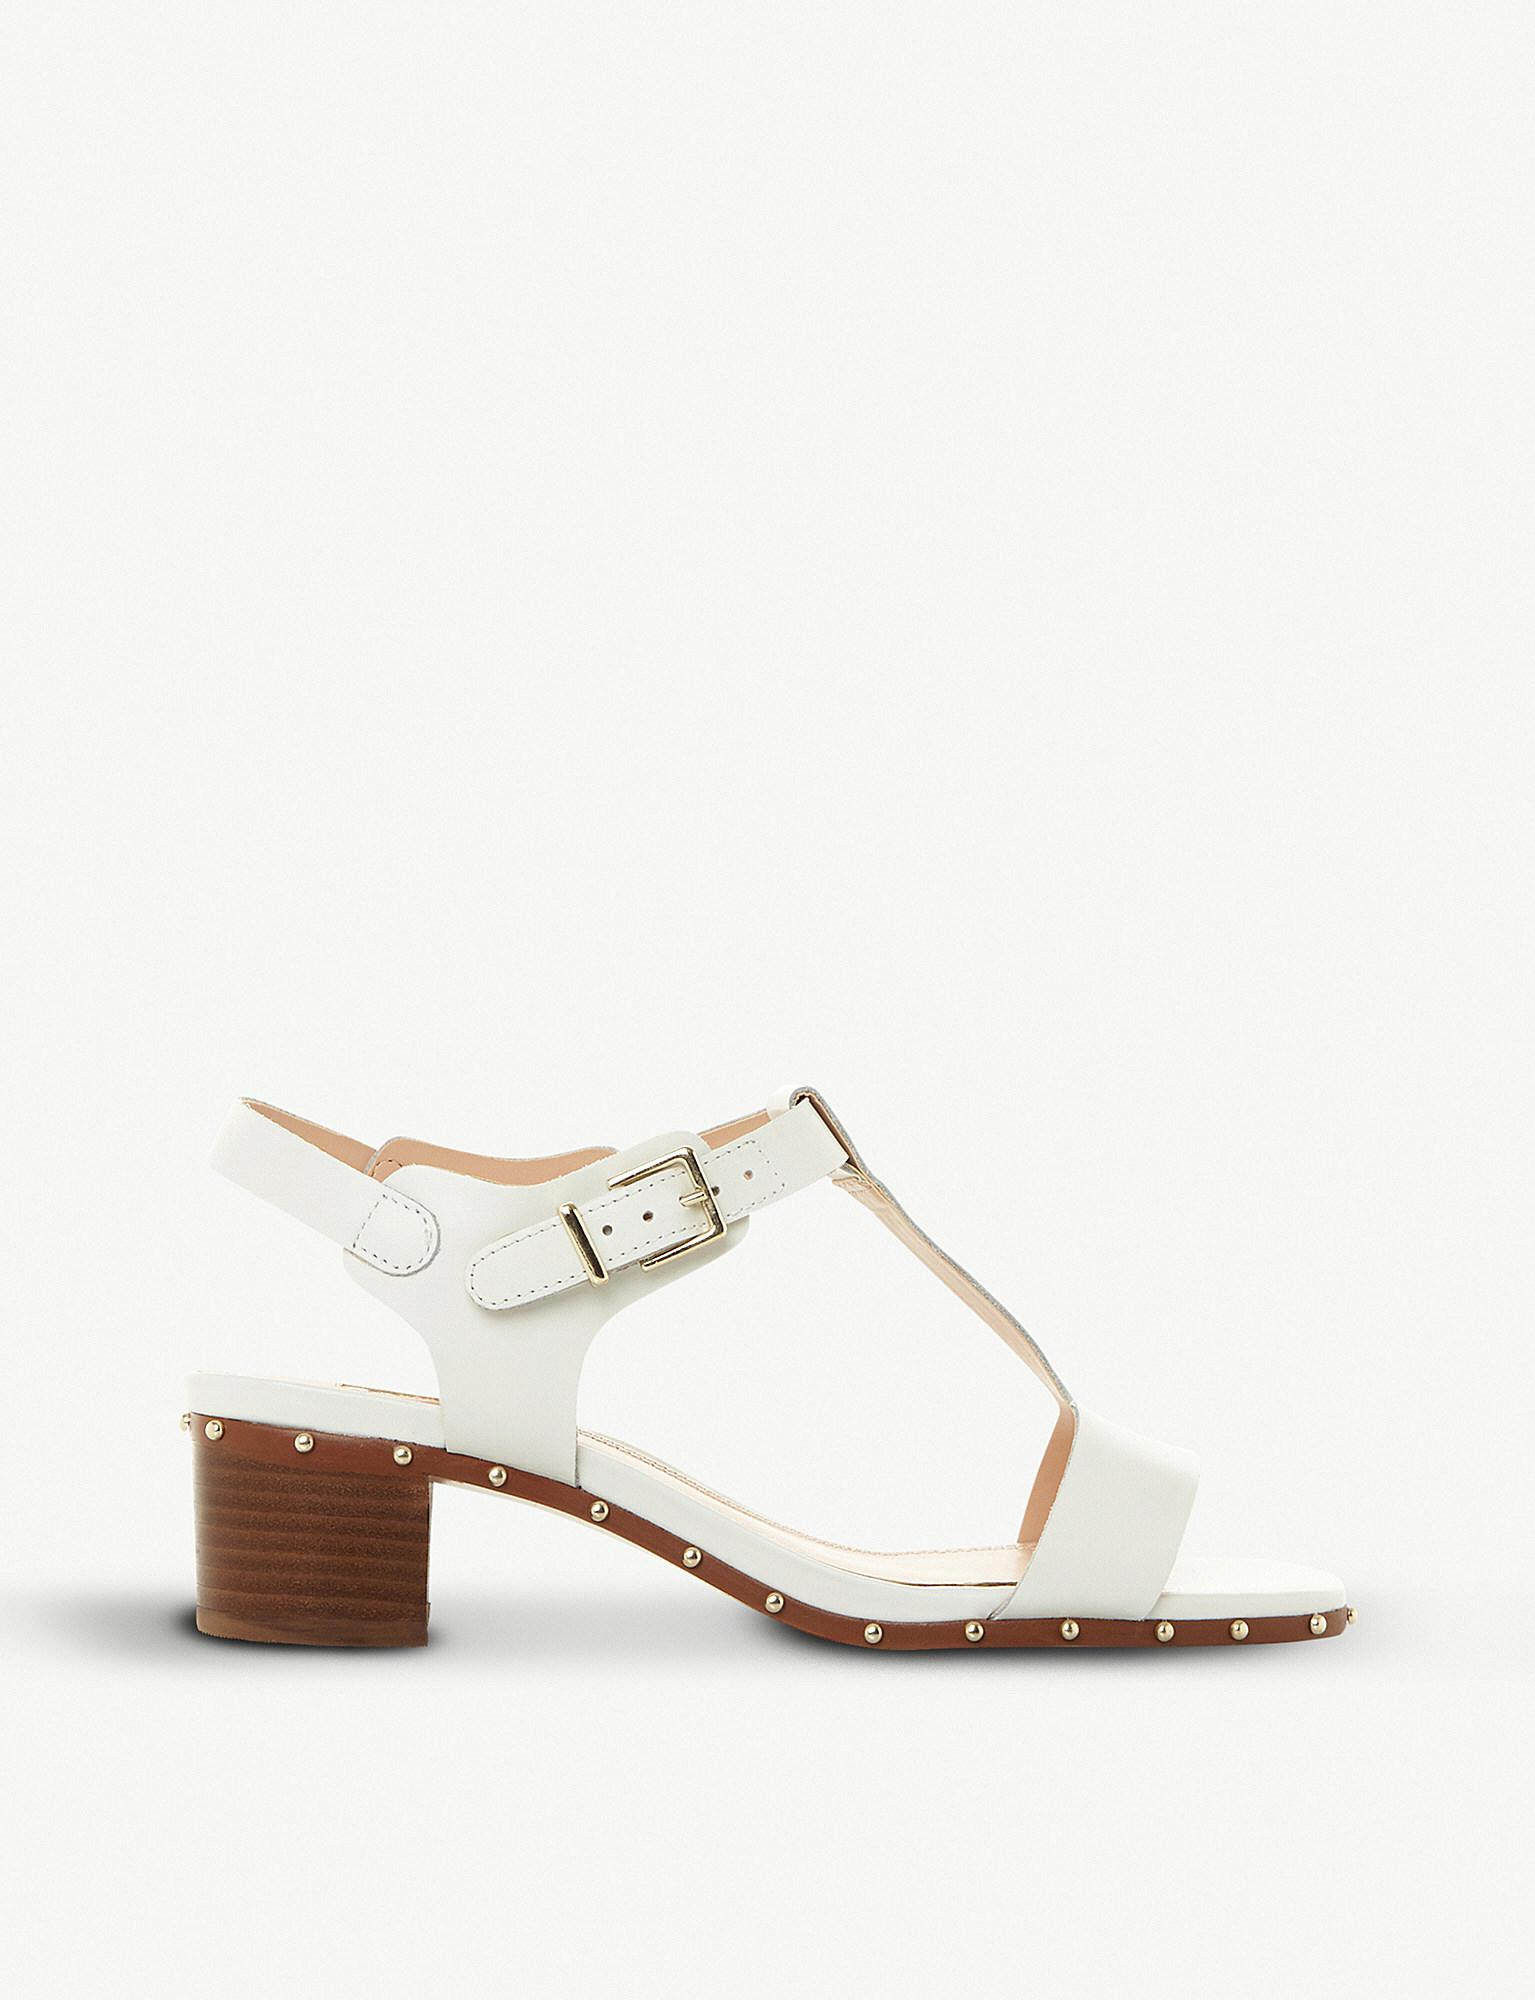 0f591f461ce4 Dune Isadora Studded Leather T-bar Sandals in White - Lyst